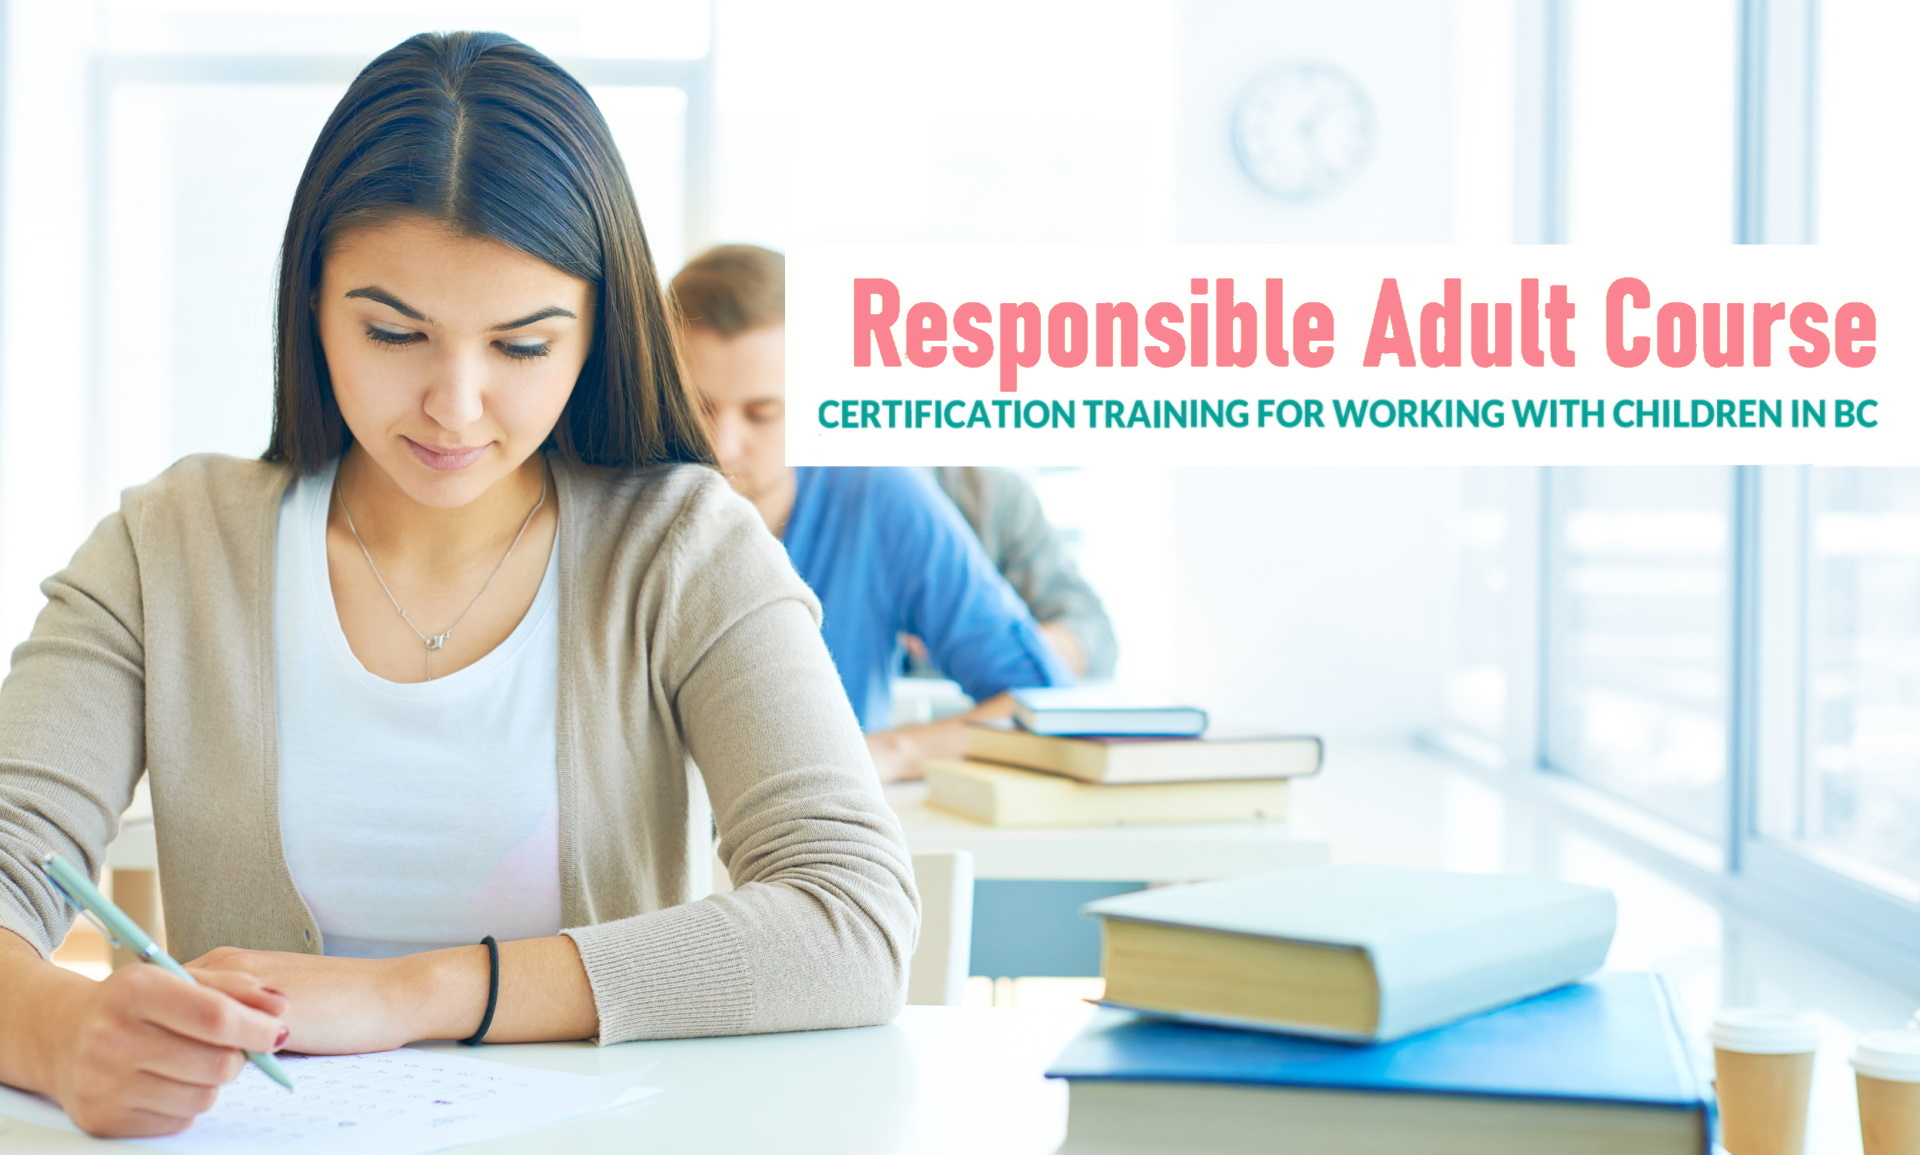 Responsible Adult Course - Certification Training for Working with Children